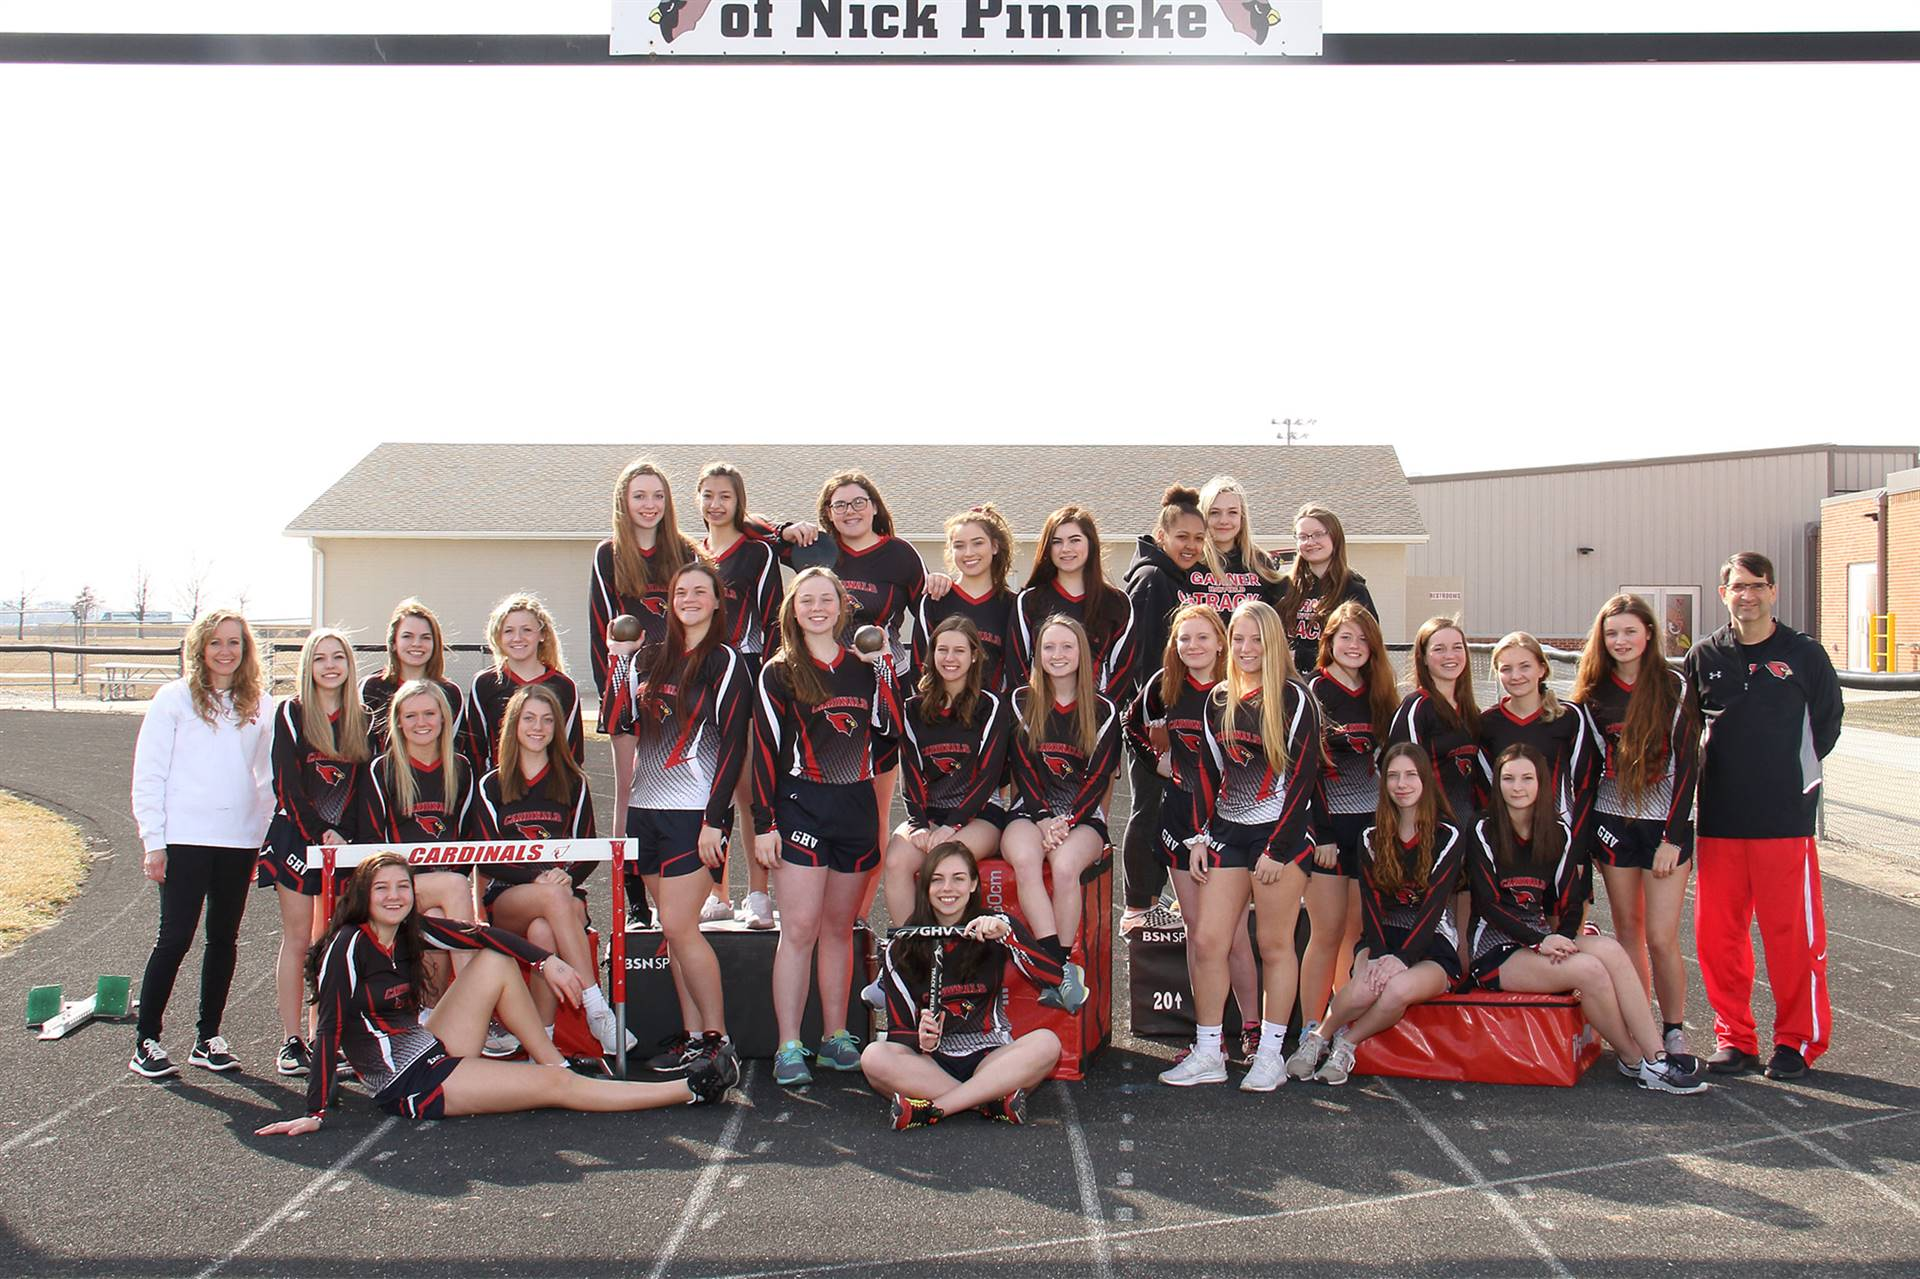 girls track team posing for a group picture on the track